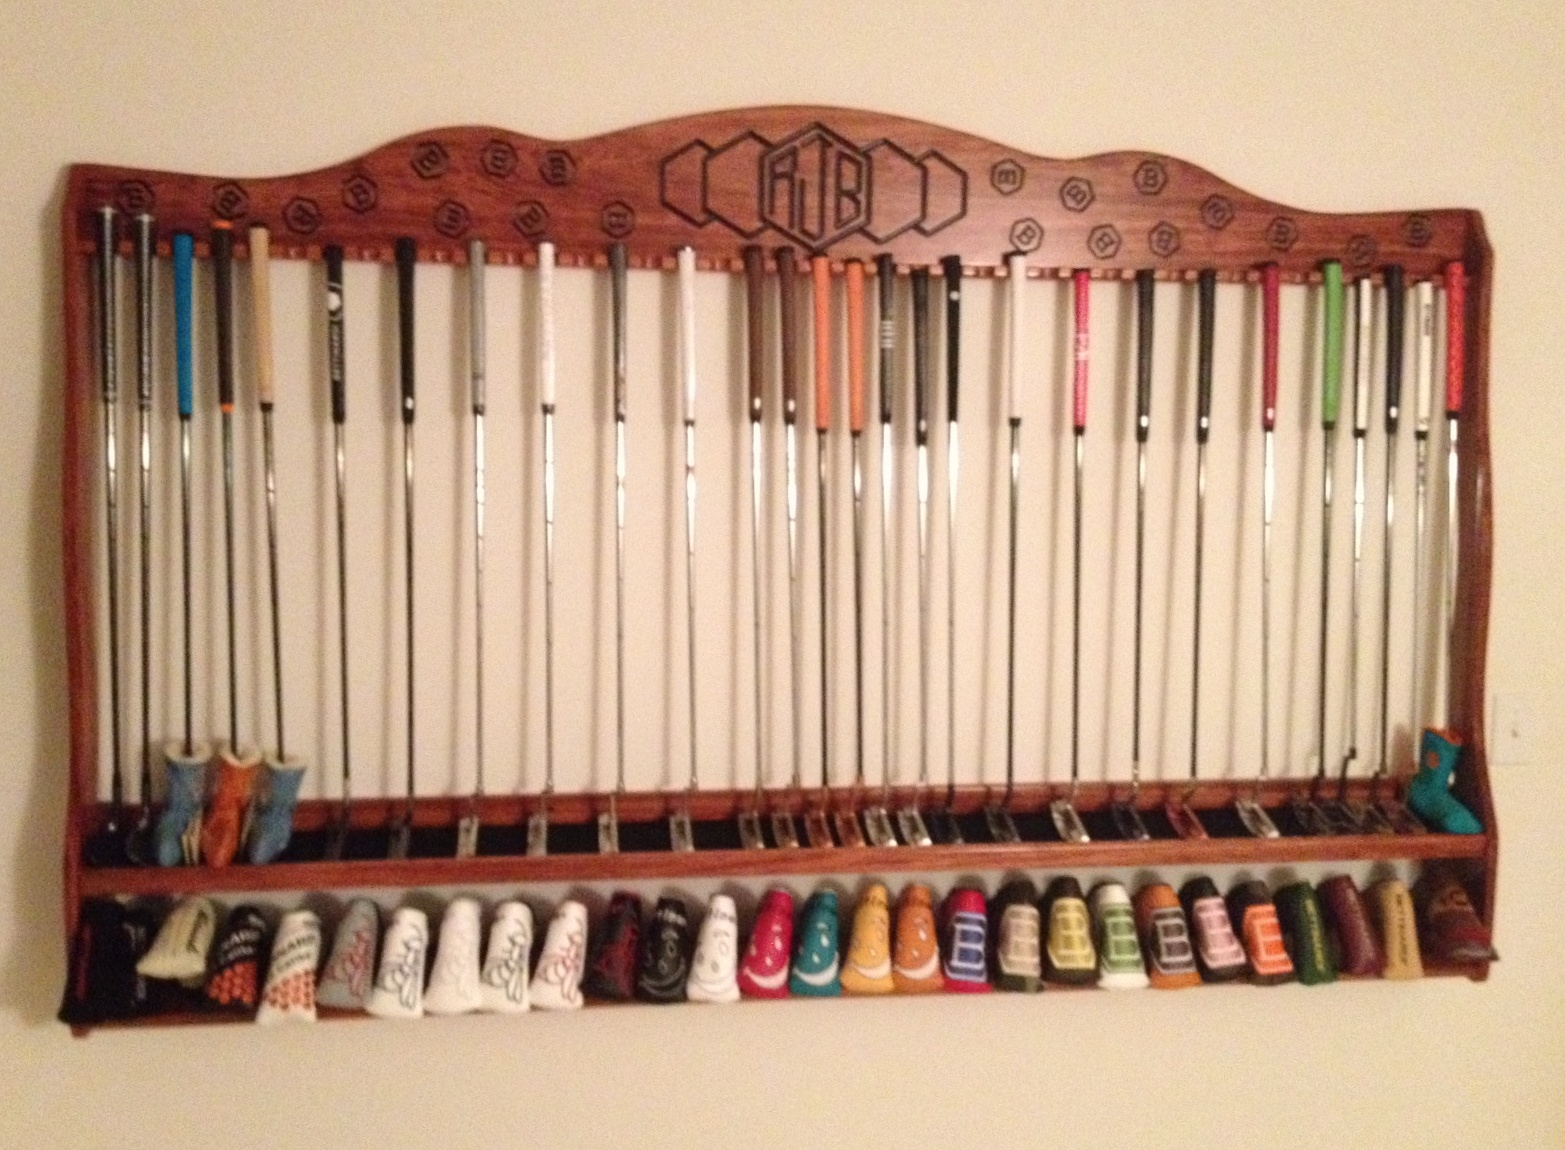 Custom Built Putter And Headcover Racks To Display Putters